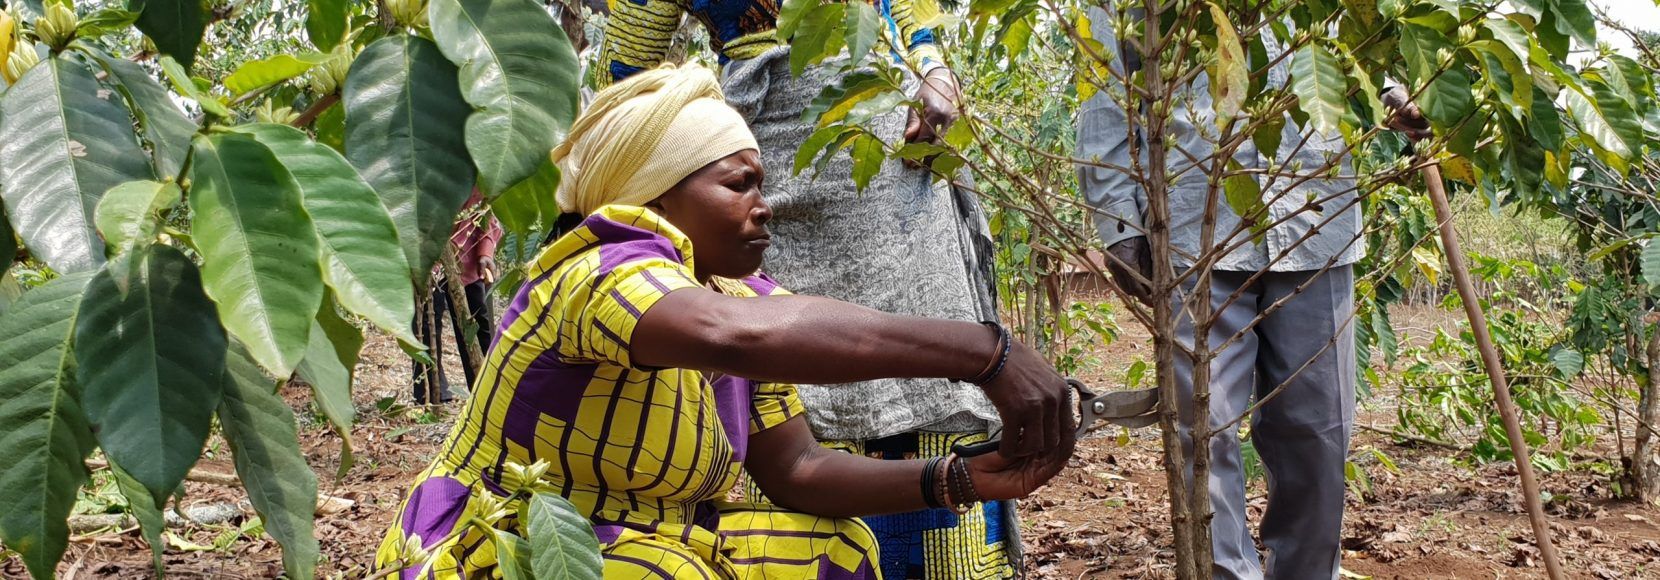 Coffee farmers in the Democratic Republic of Congo tend to their coffee trees